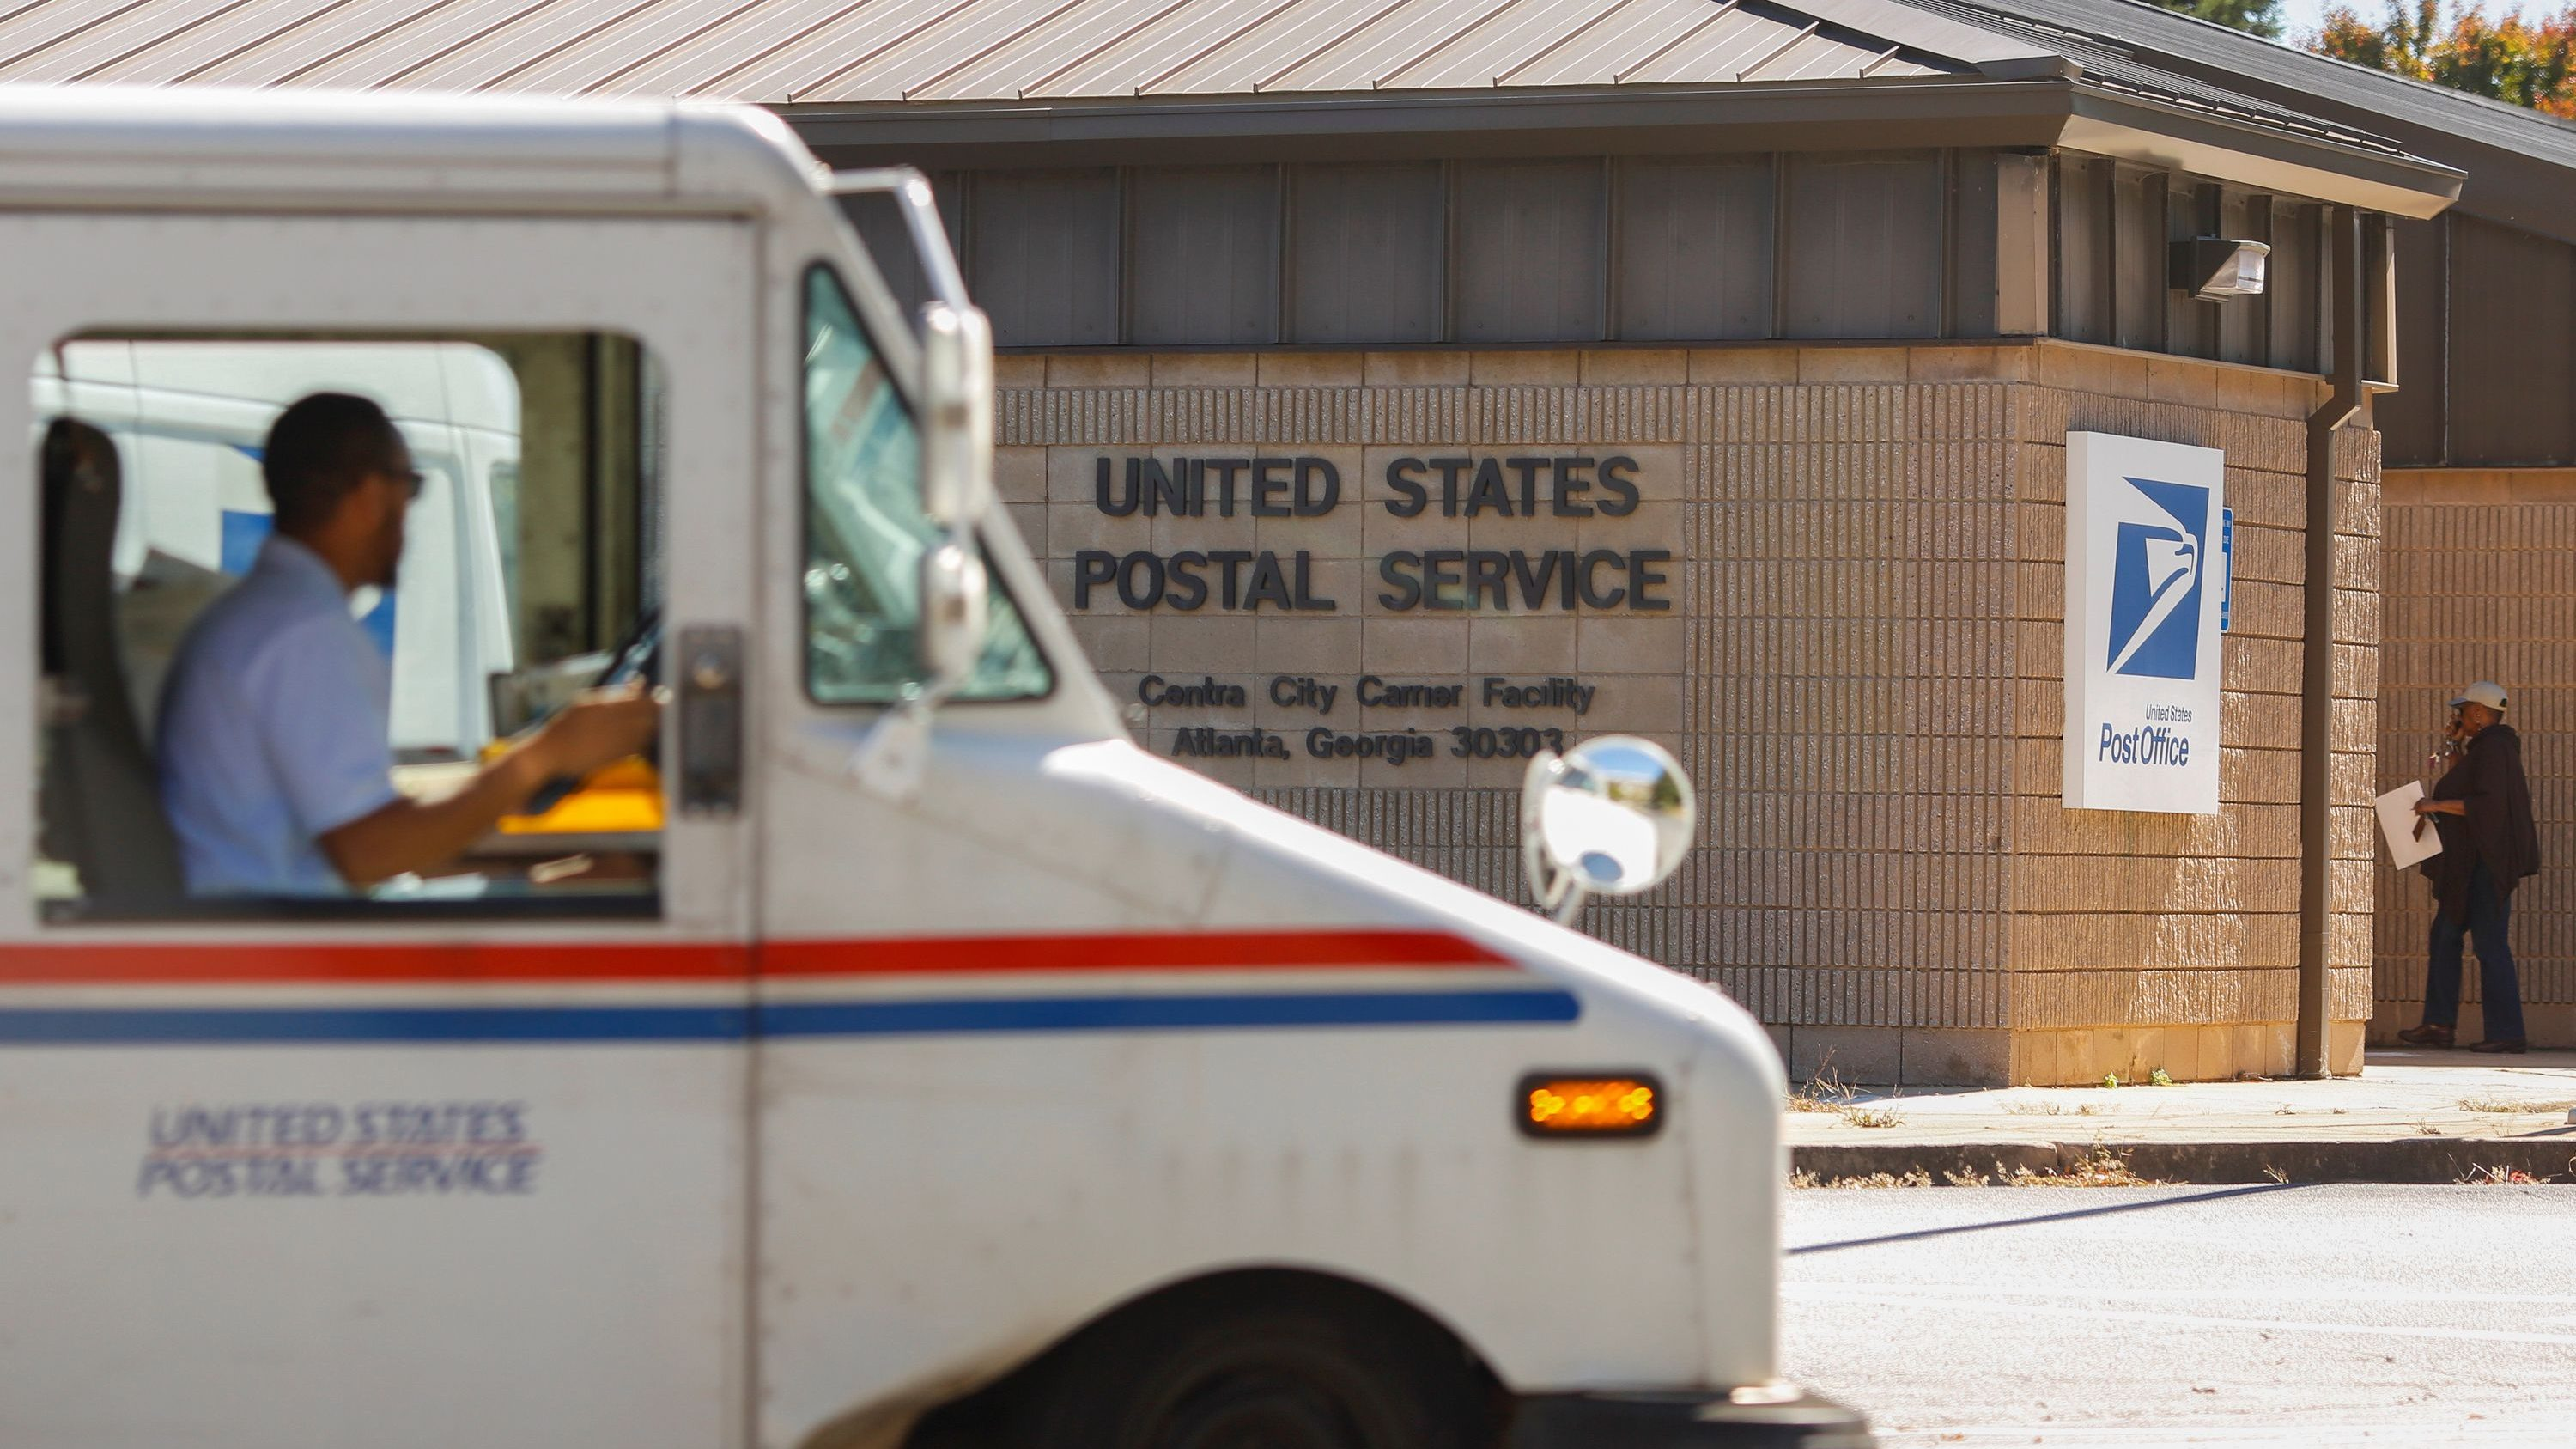 is the post office open during the current government shutdown